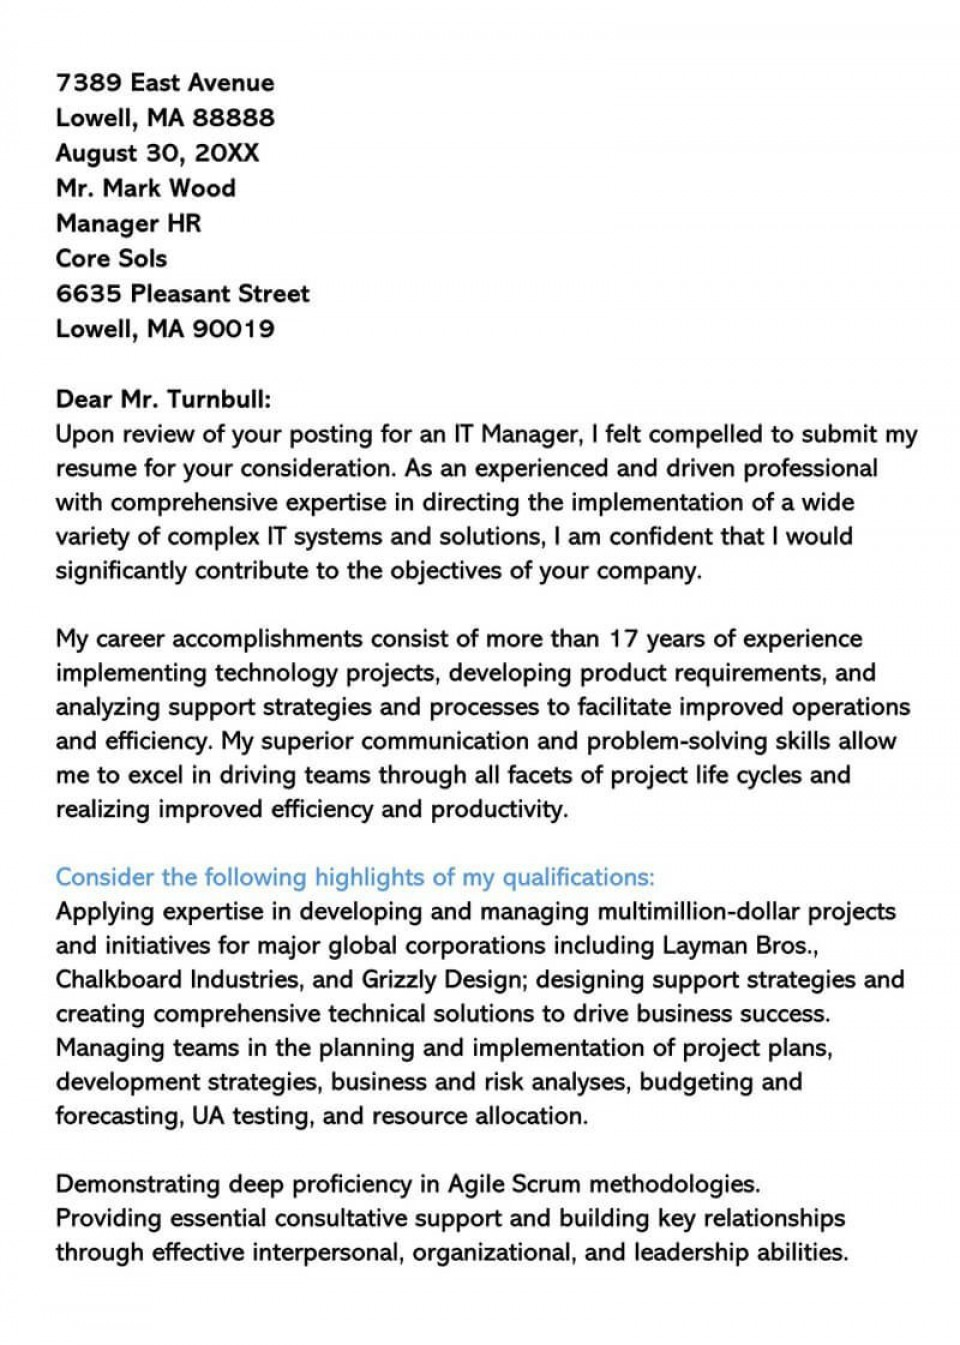 004 Staggering General Manager Cover Letter Template Design  Hotel960